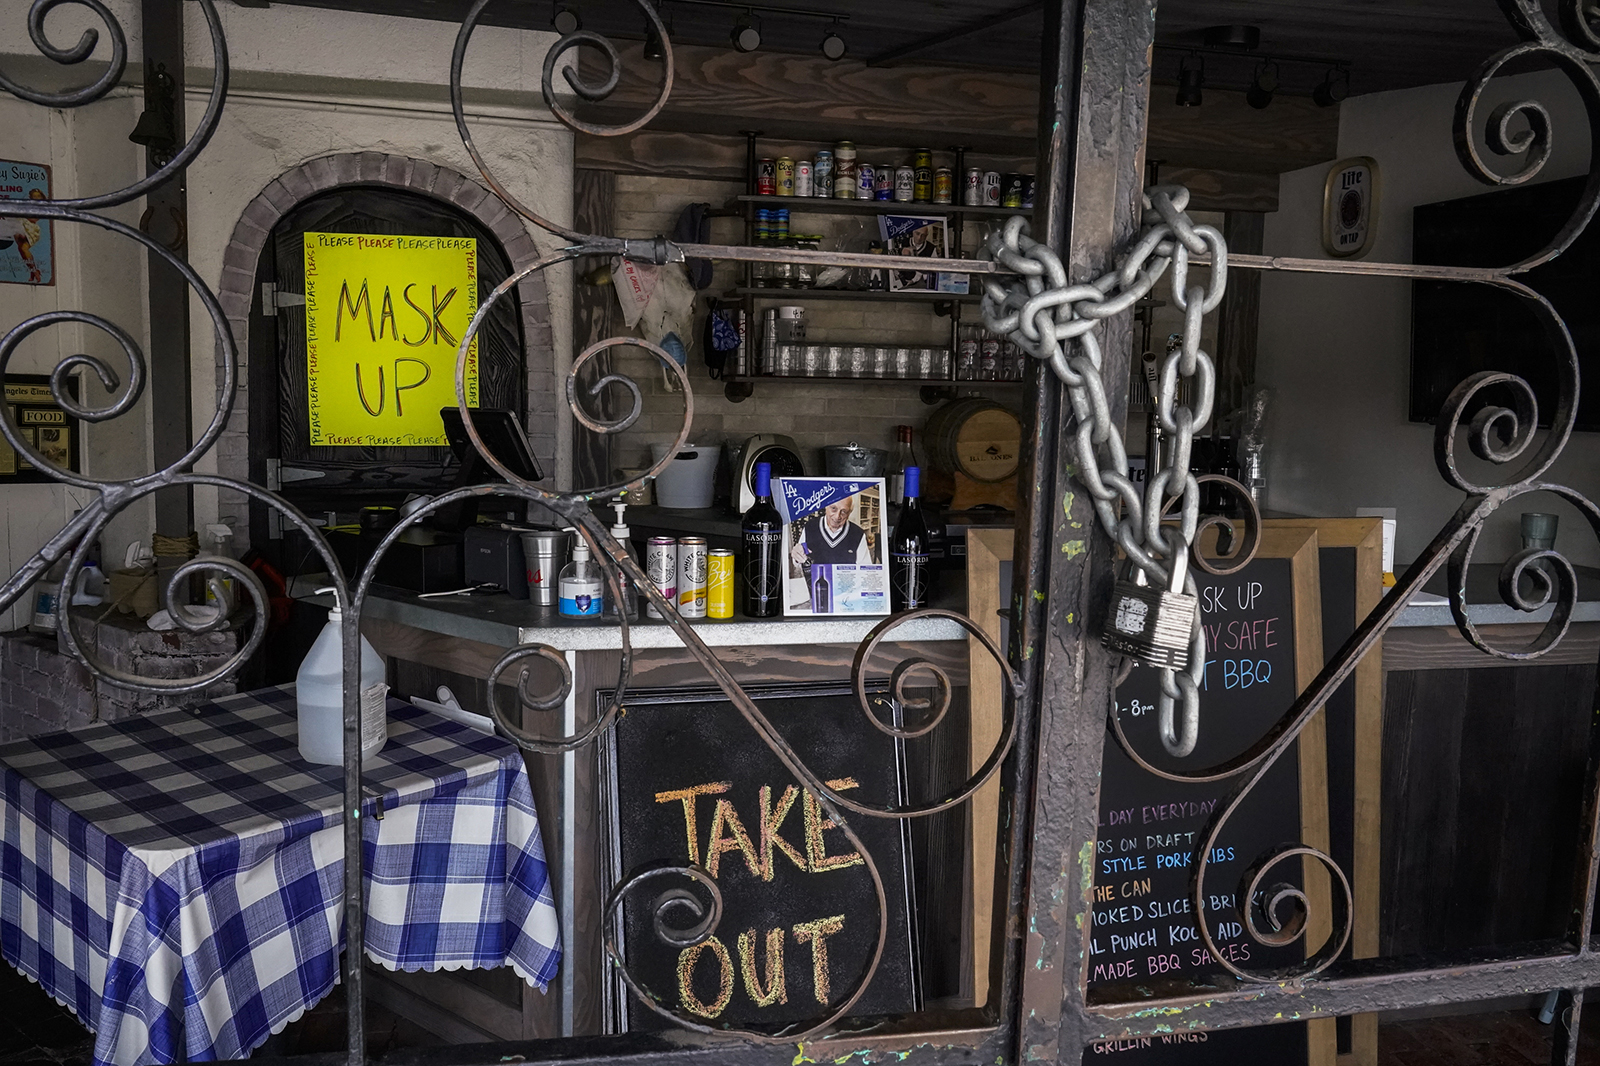 The doors of the Baby Blues BBQ restaurant are seen locked in Los Angeles Monday, January 25.